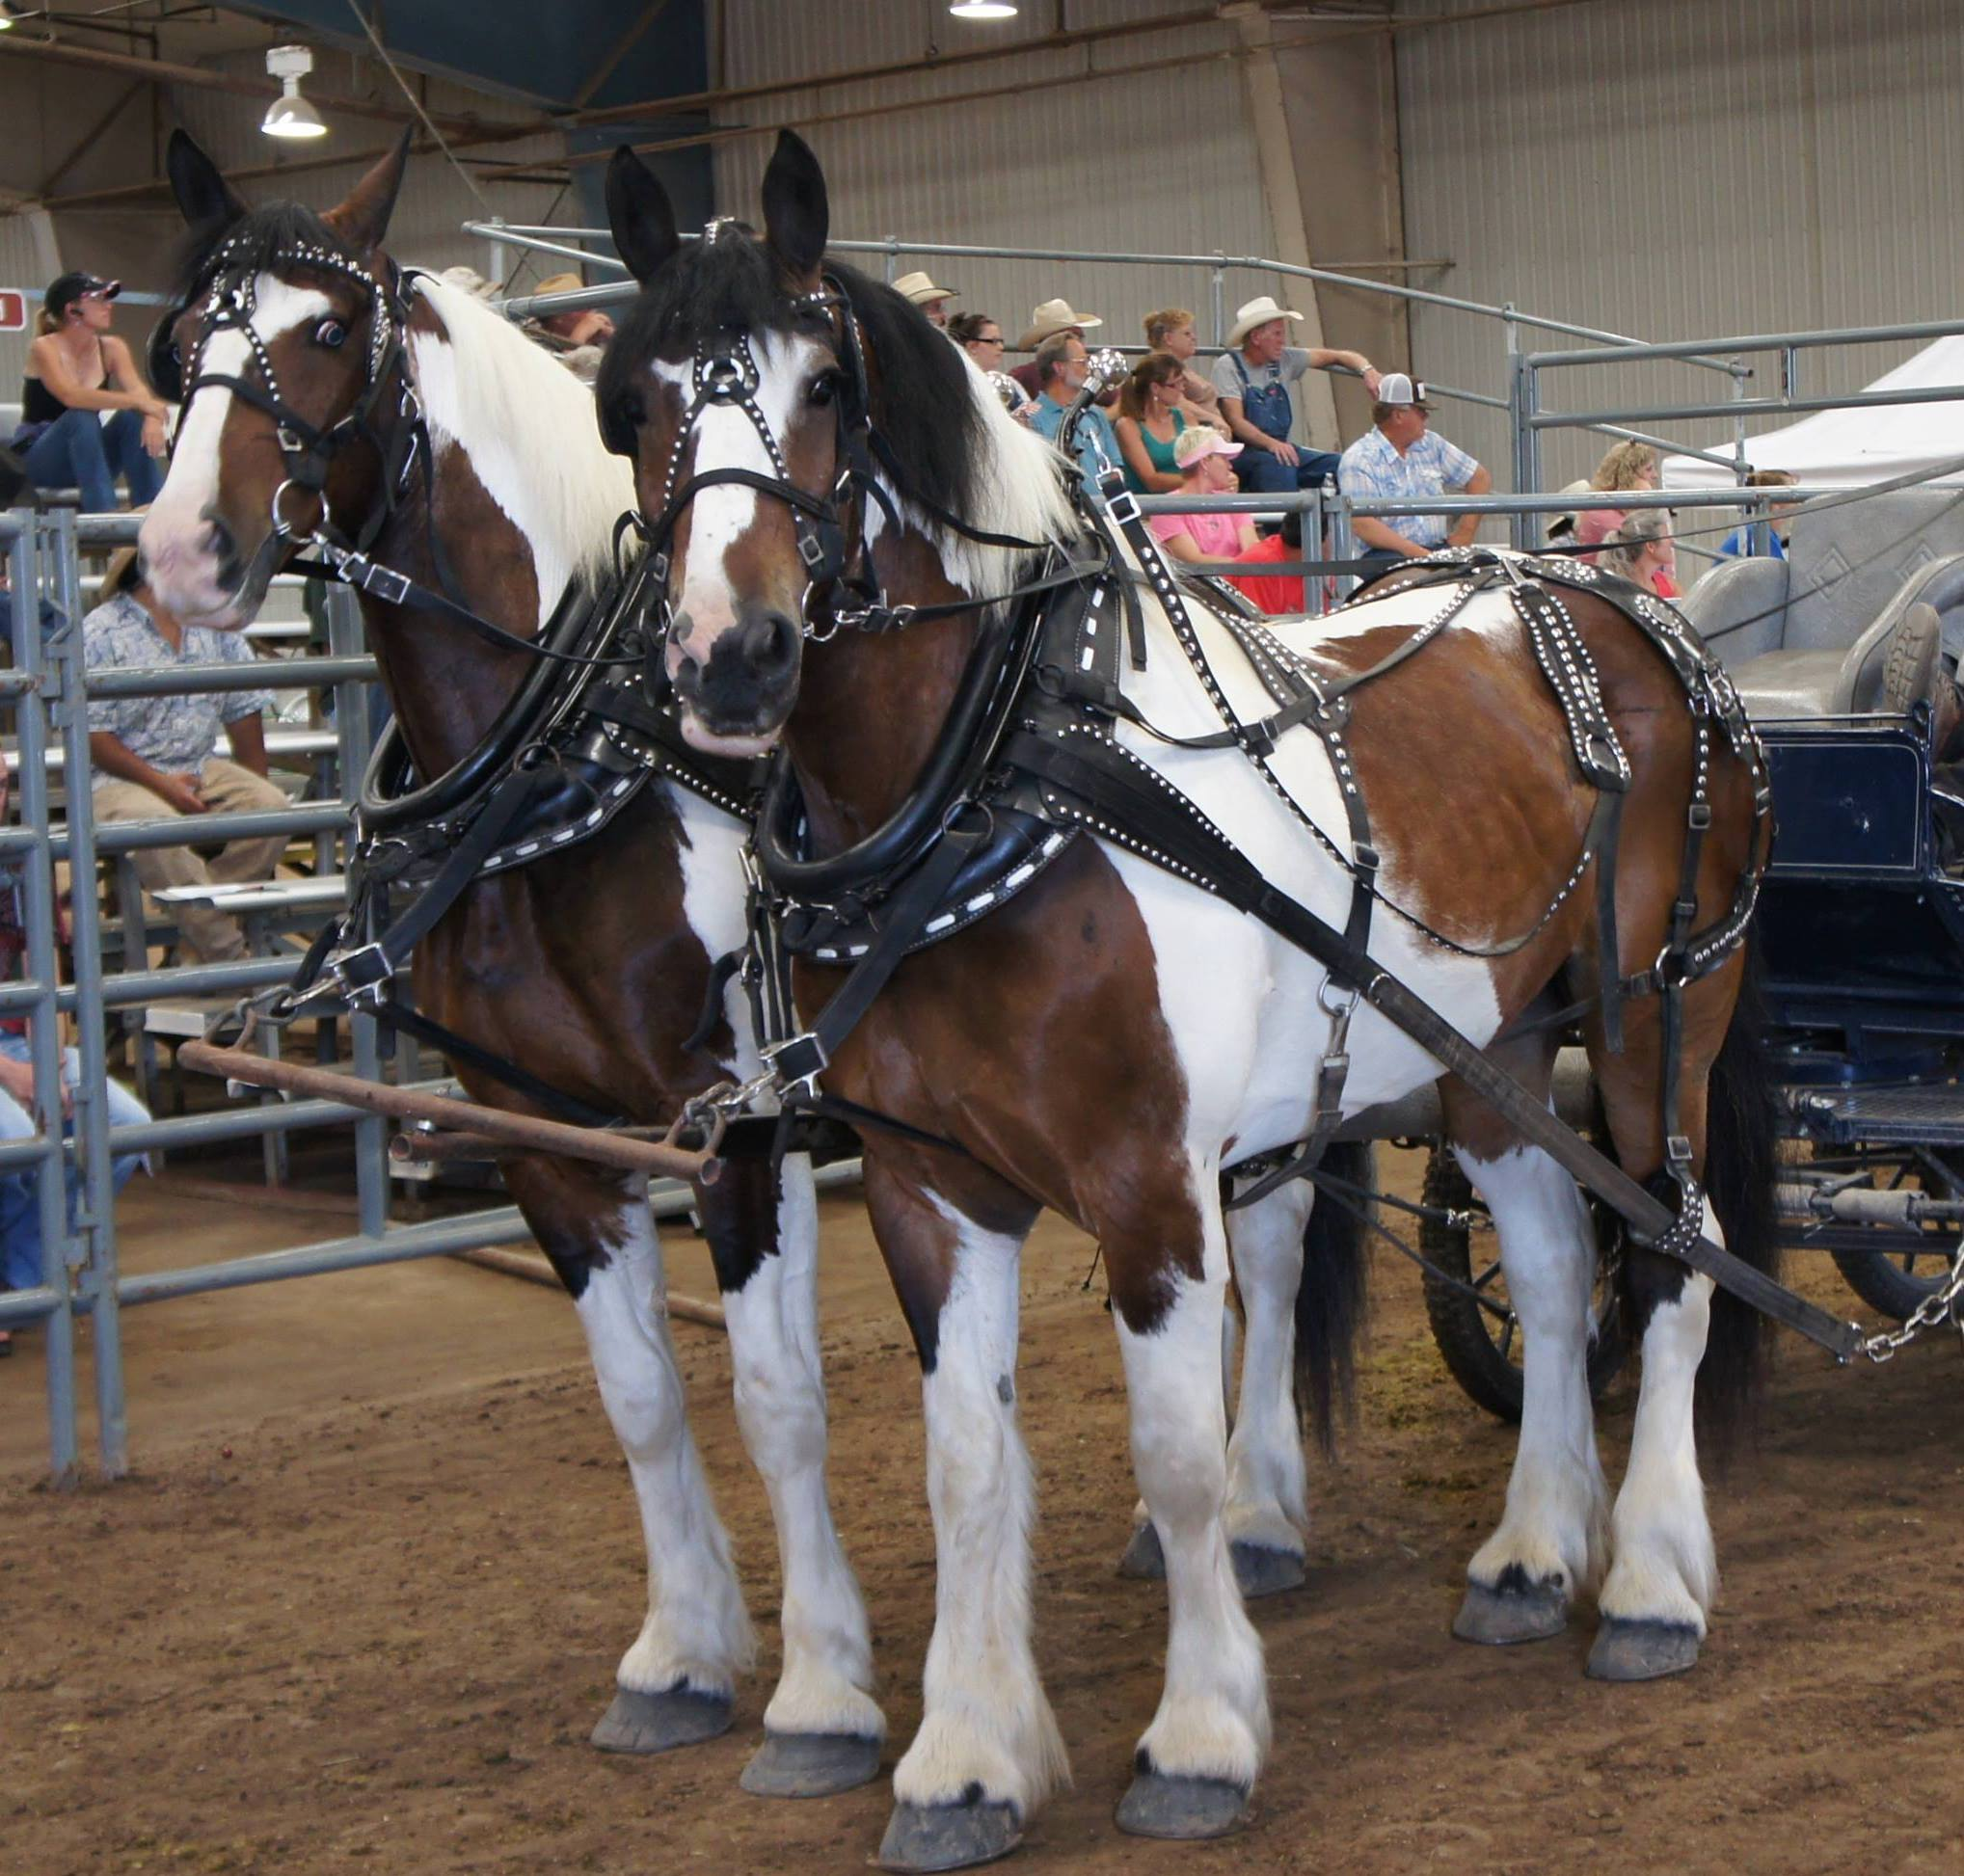 Harley D. Troyer Auctioneers, Inc. specializes in Draft Horses, Mules, Light Driving Horses, Carriages, Wagons, Harness, and all types of Horse-Drawn Farm Equipment.